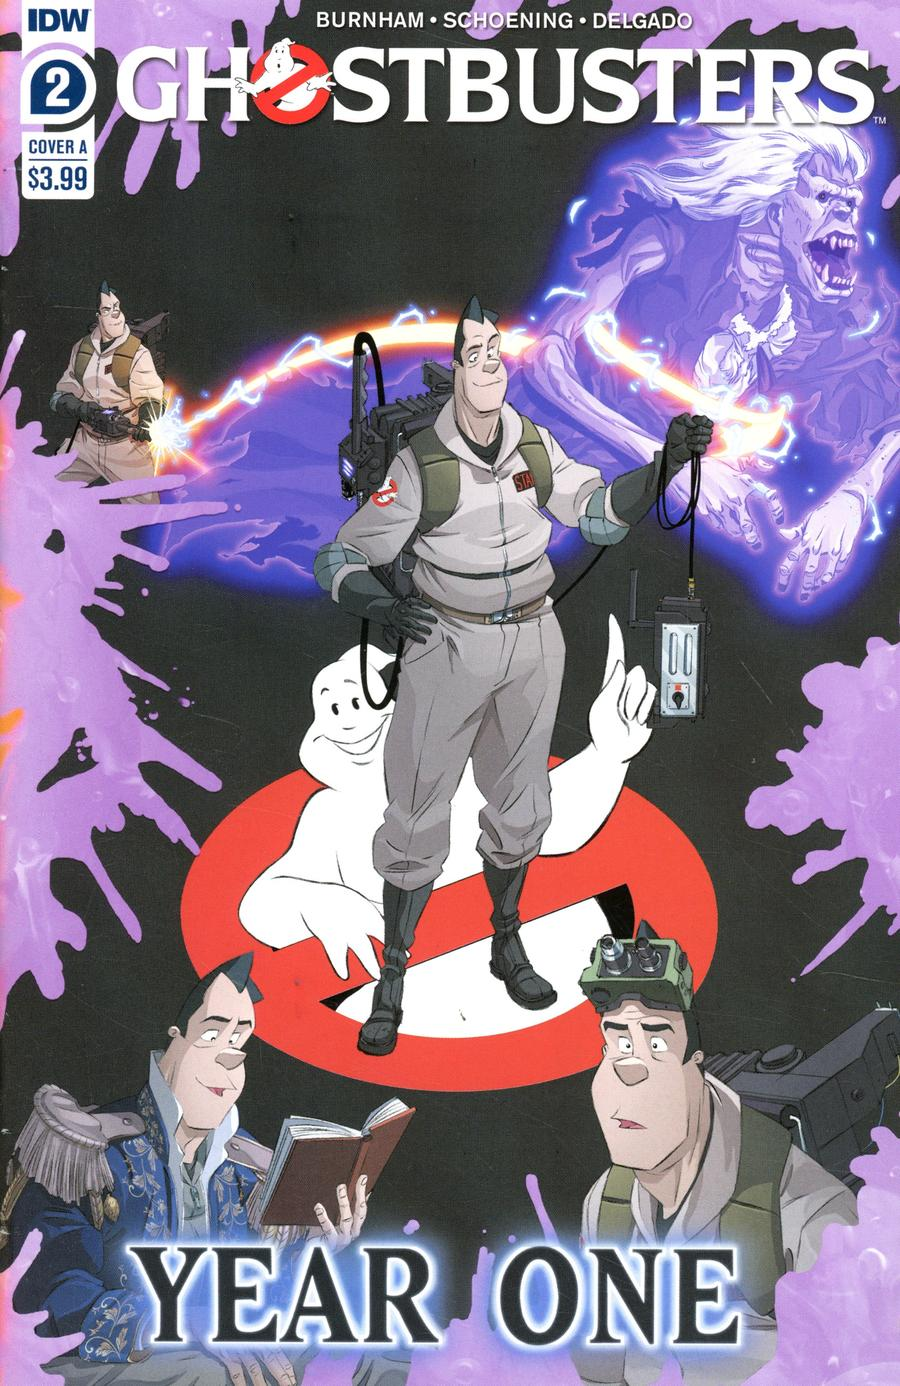 Ghostbusters: Year One #2 (2020)